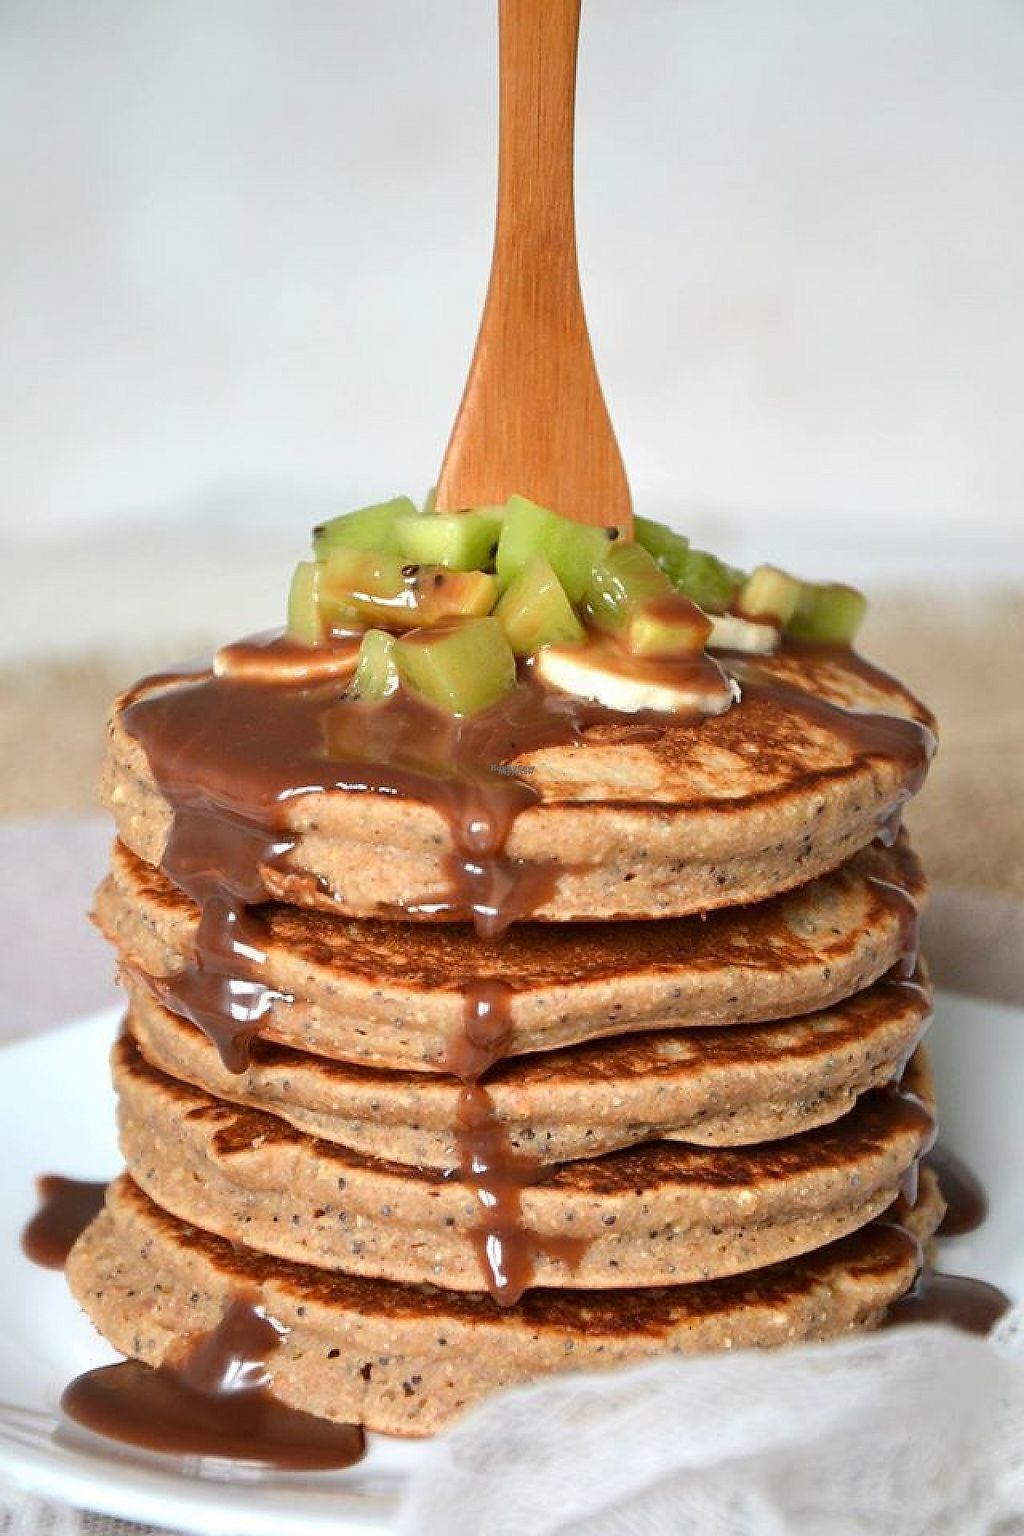 "Photo of La Vie Claire  by <a href=""/members/profile/community"">community</a> <br/>vegan pancakes  <br/> February 4, 2017  - <a href='/contact/abuse/image/68799/221843'>Report</a>"